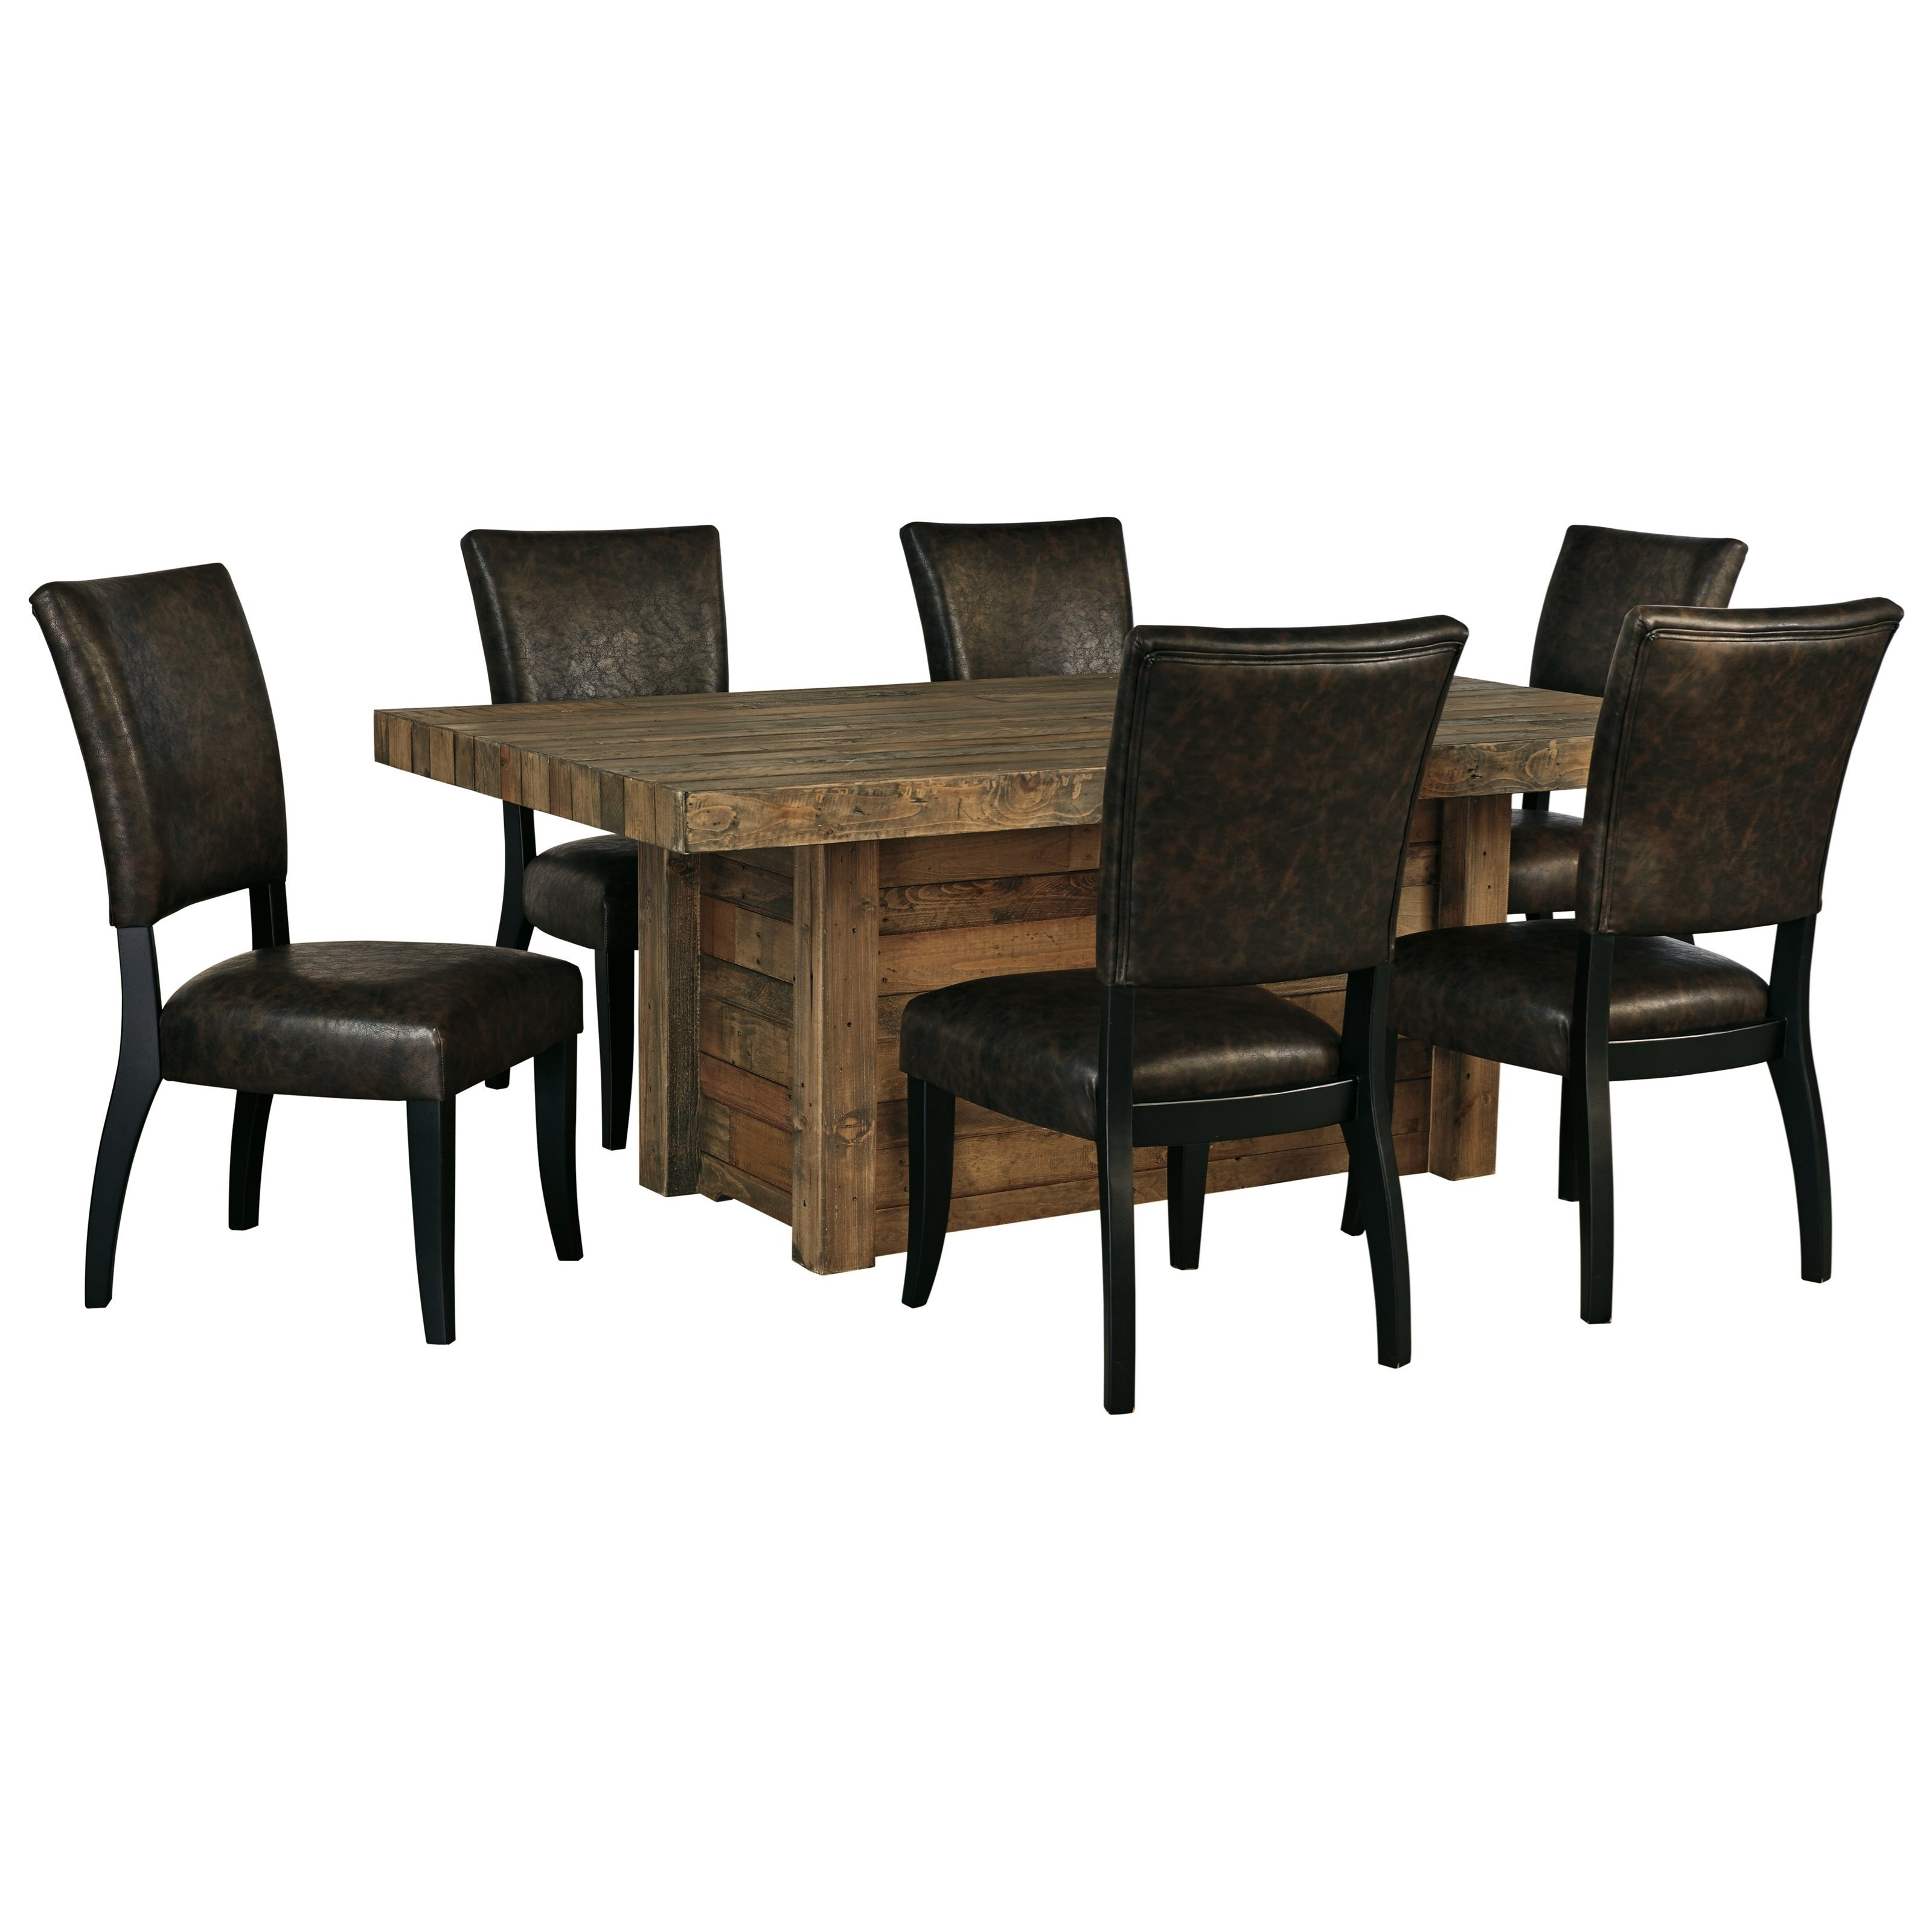 Summerfield 7-Piece Rectangular Dining Room Table Set at Ruby Gordon Home